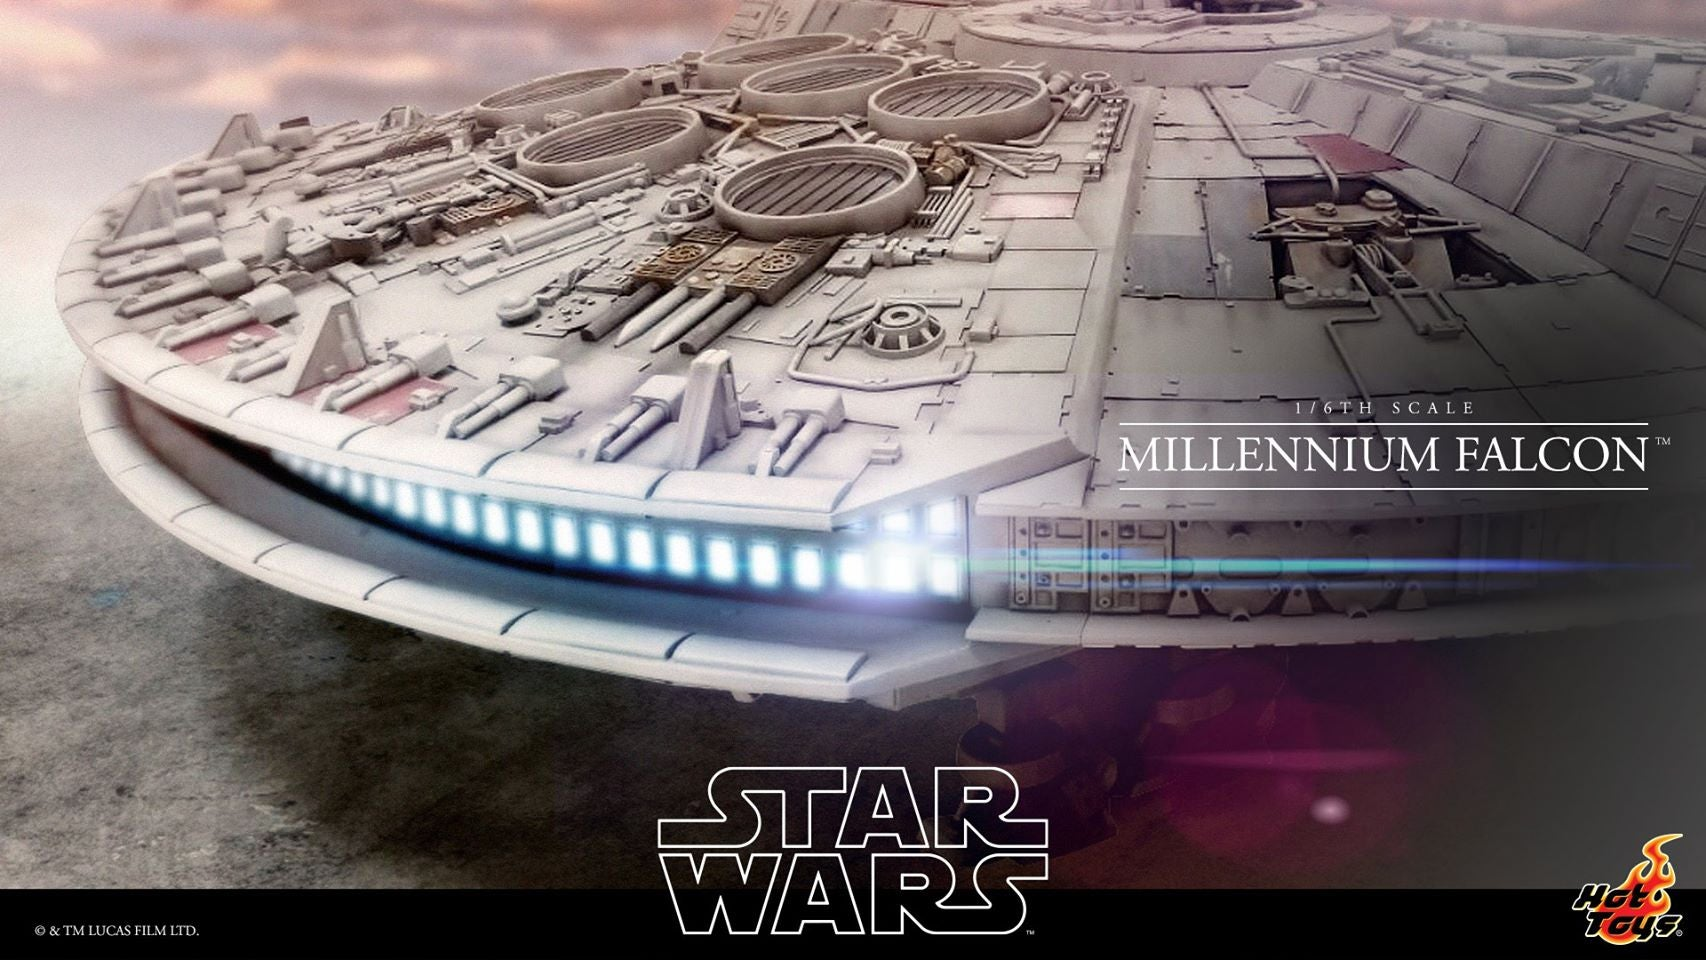 Hot Toys Is Making a Sixth-Scale Millennium Falcon That's 18-Feet Long